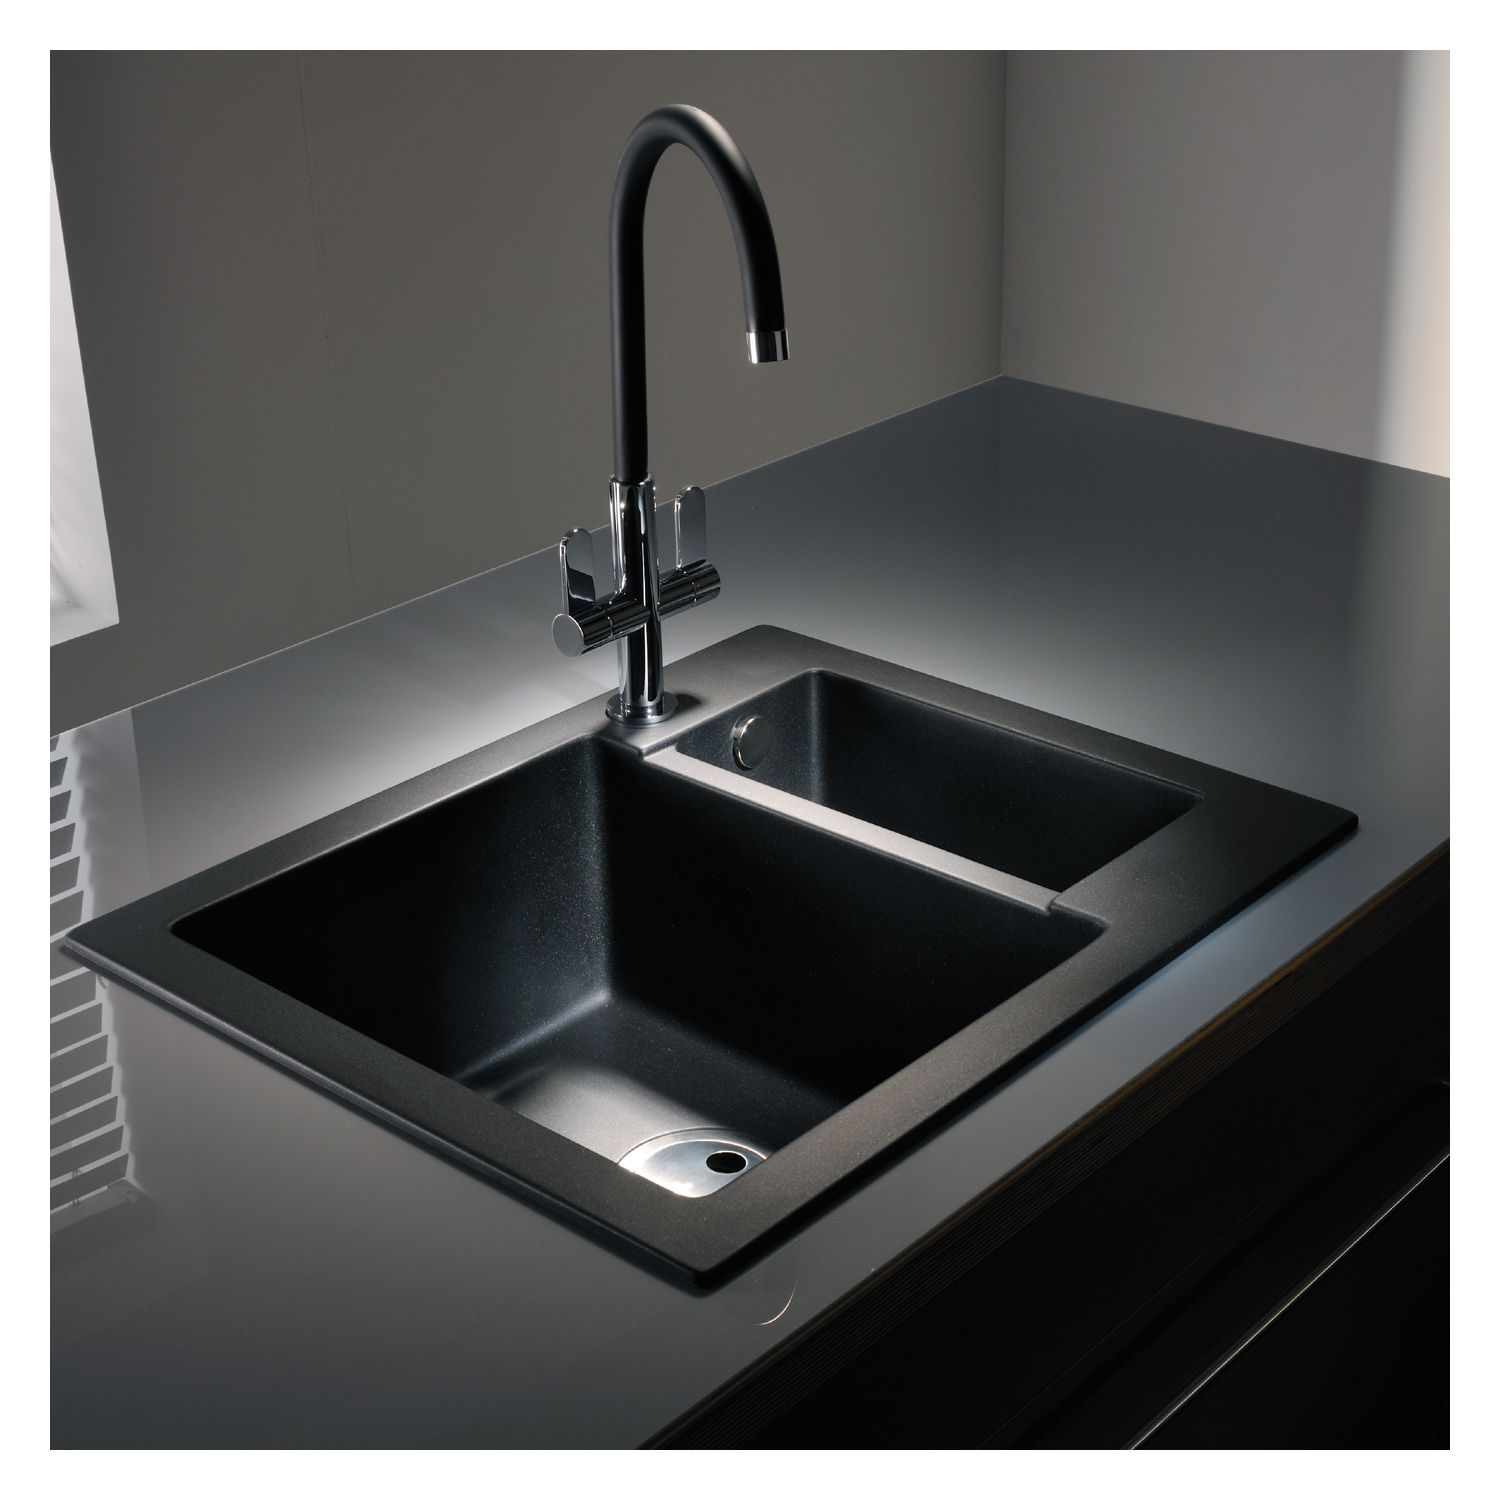 Granite Sink Bowl : Abode Zero 1.5 Bowl Granite Sink Without Drainer - Sinks-Taps.com